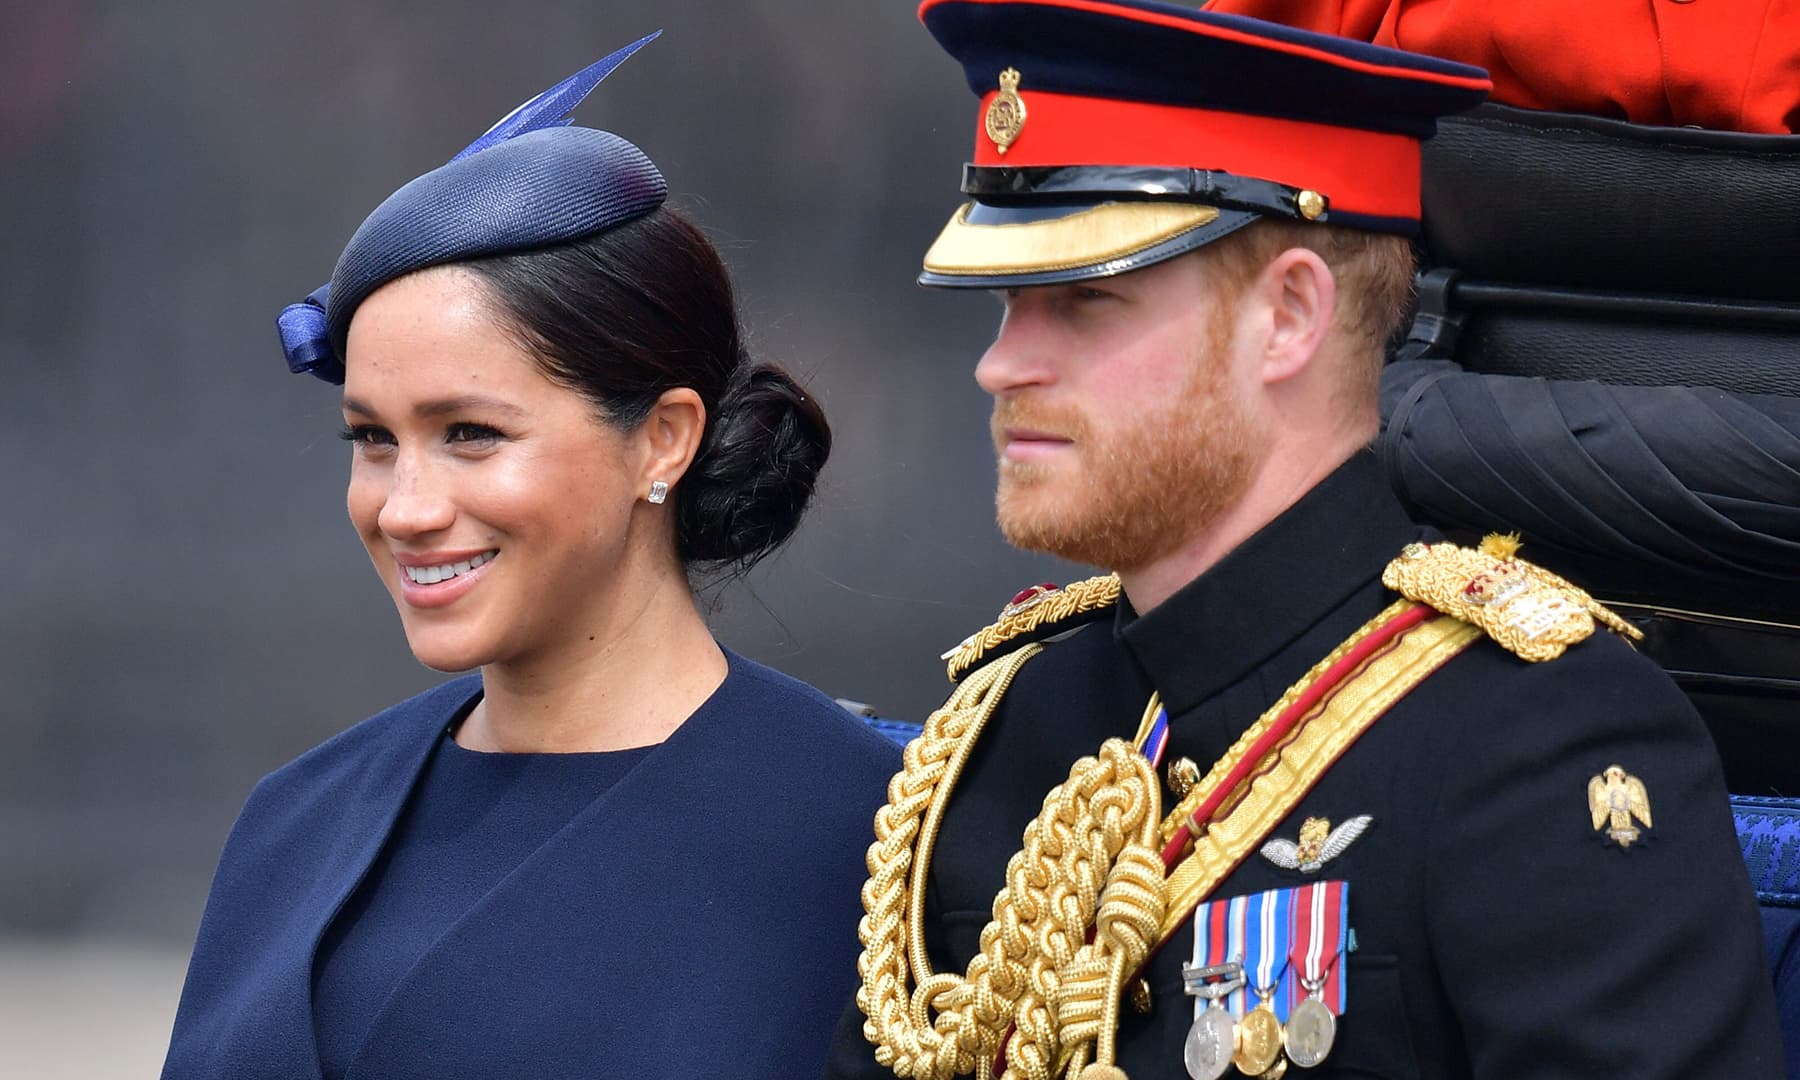 Britain's Meghan, Duchess of Sussex (L) and Britain's Prince Harry, Duke of Sussex (R) make their way in a horse drawn carriage to Horseguards parade ahead of the Queen's Birthday Parade. — AFP